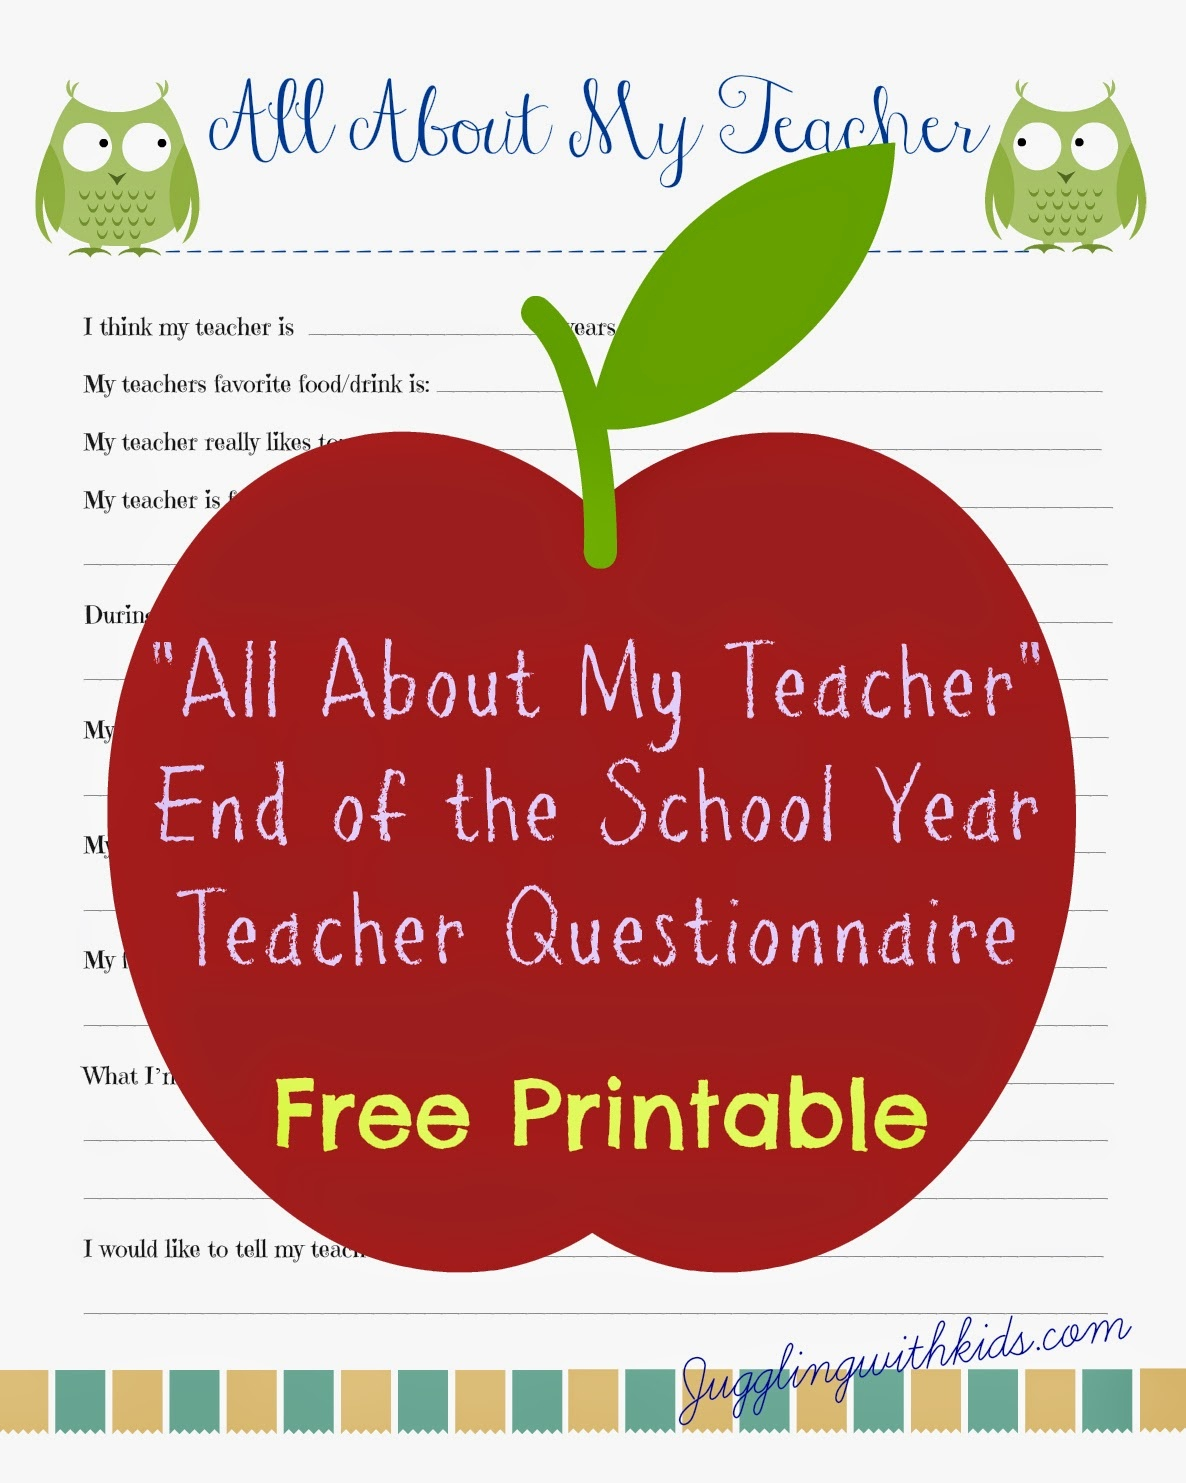 Free Teacher Printable Questionnaire For End Of School Year - All About My Teacher Free Printable